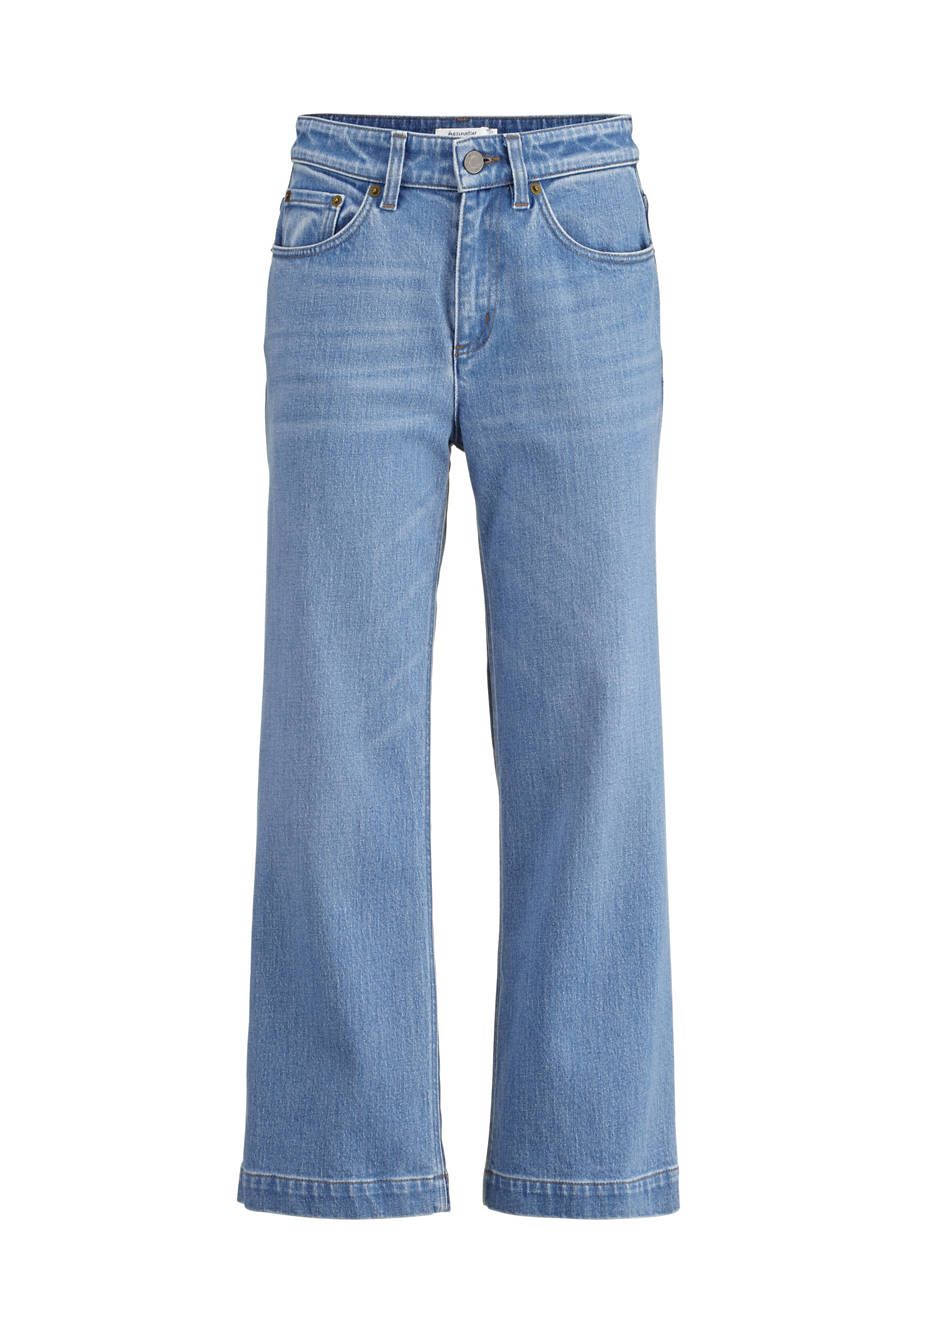 Cropped flared jeans made of organic denim